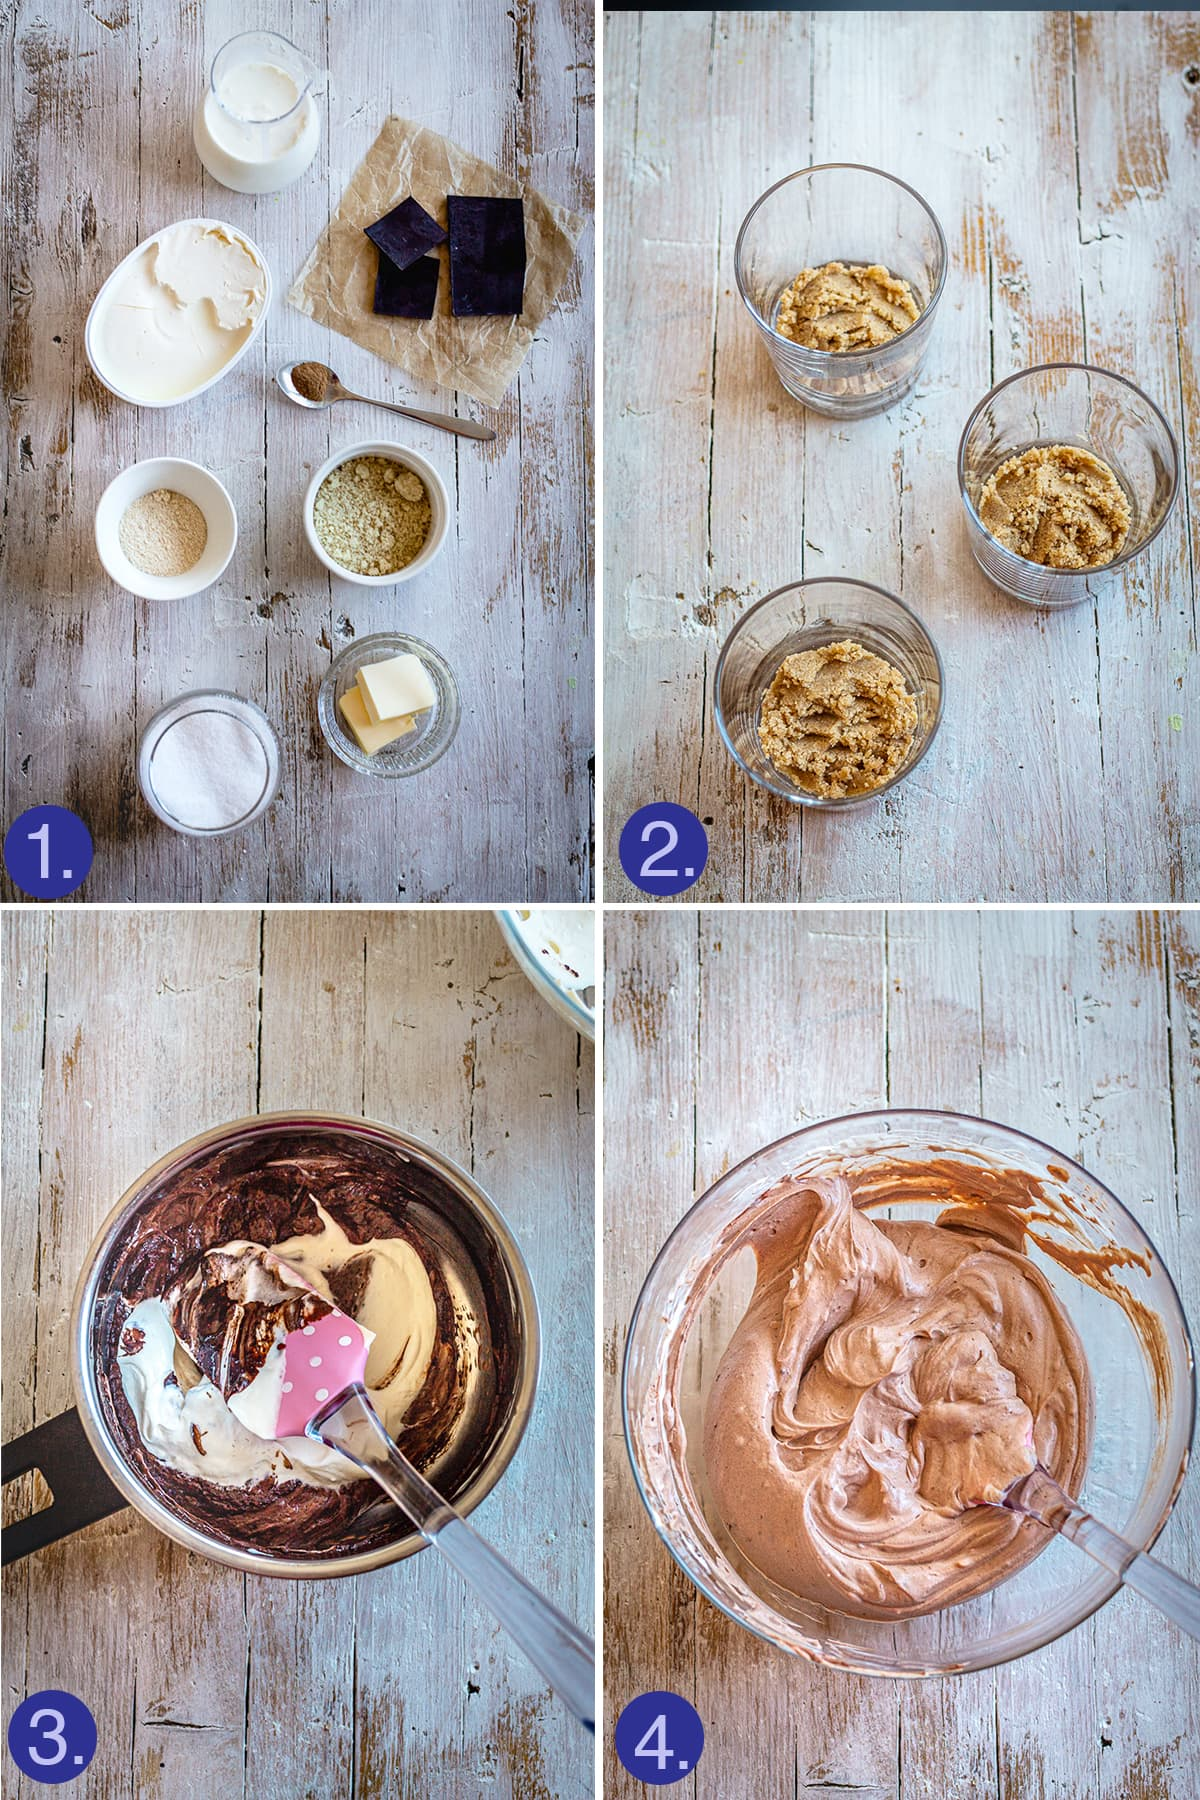 ingredients and main steps for chocolate cheesecake in glasses